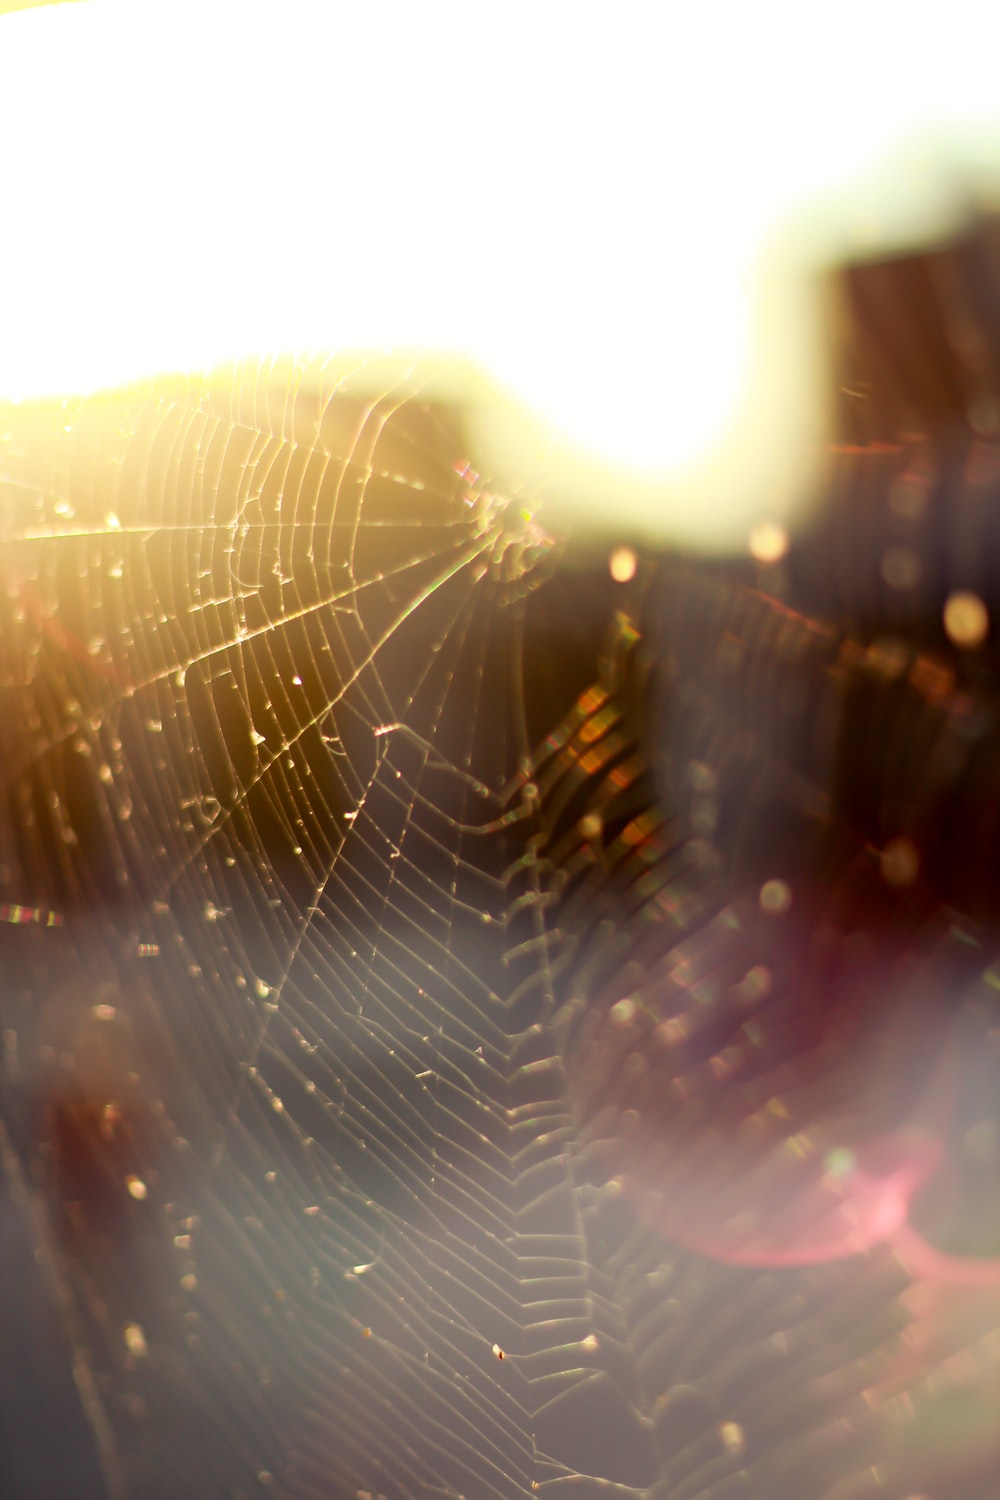 water droplets on spider web in close up photography during daytime